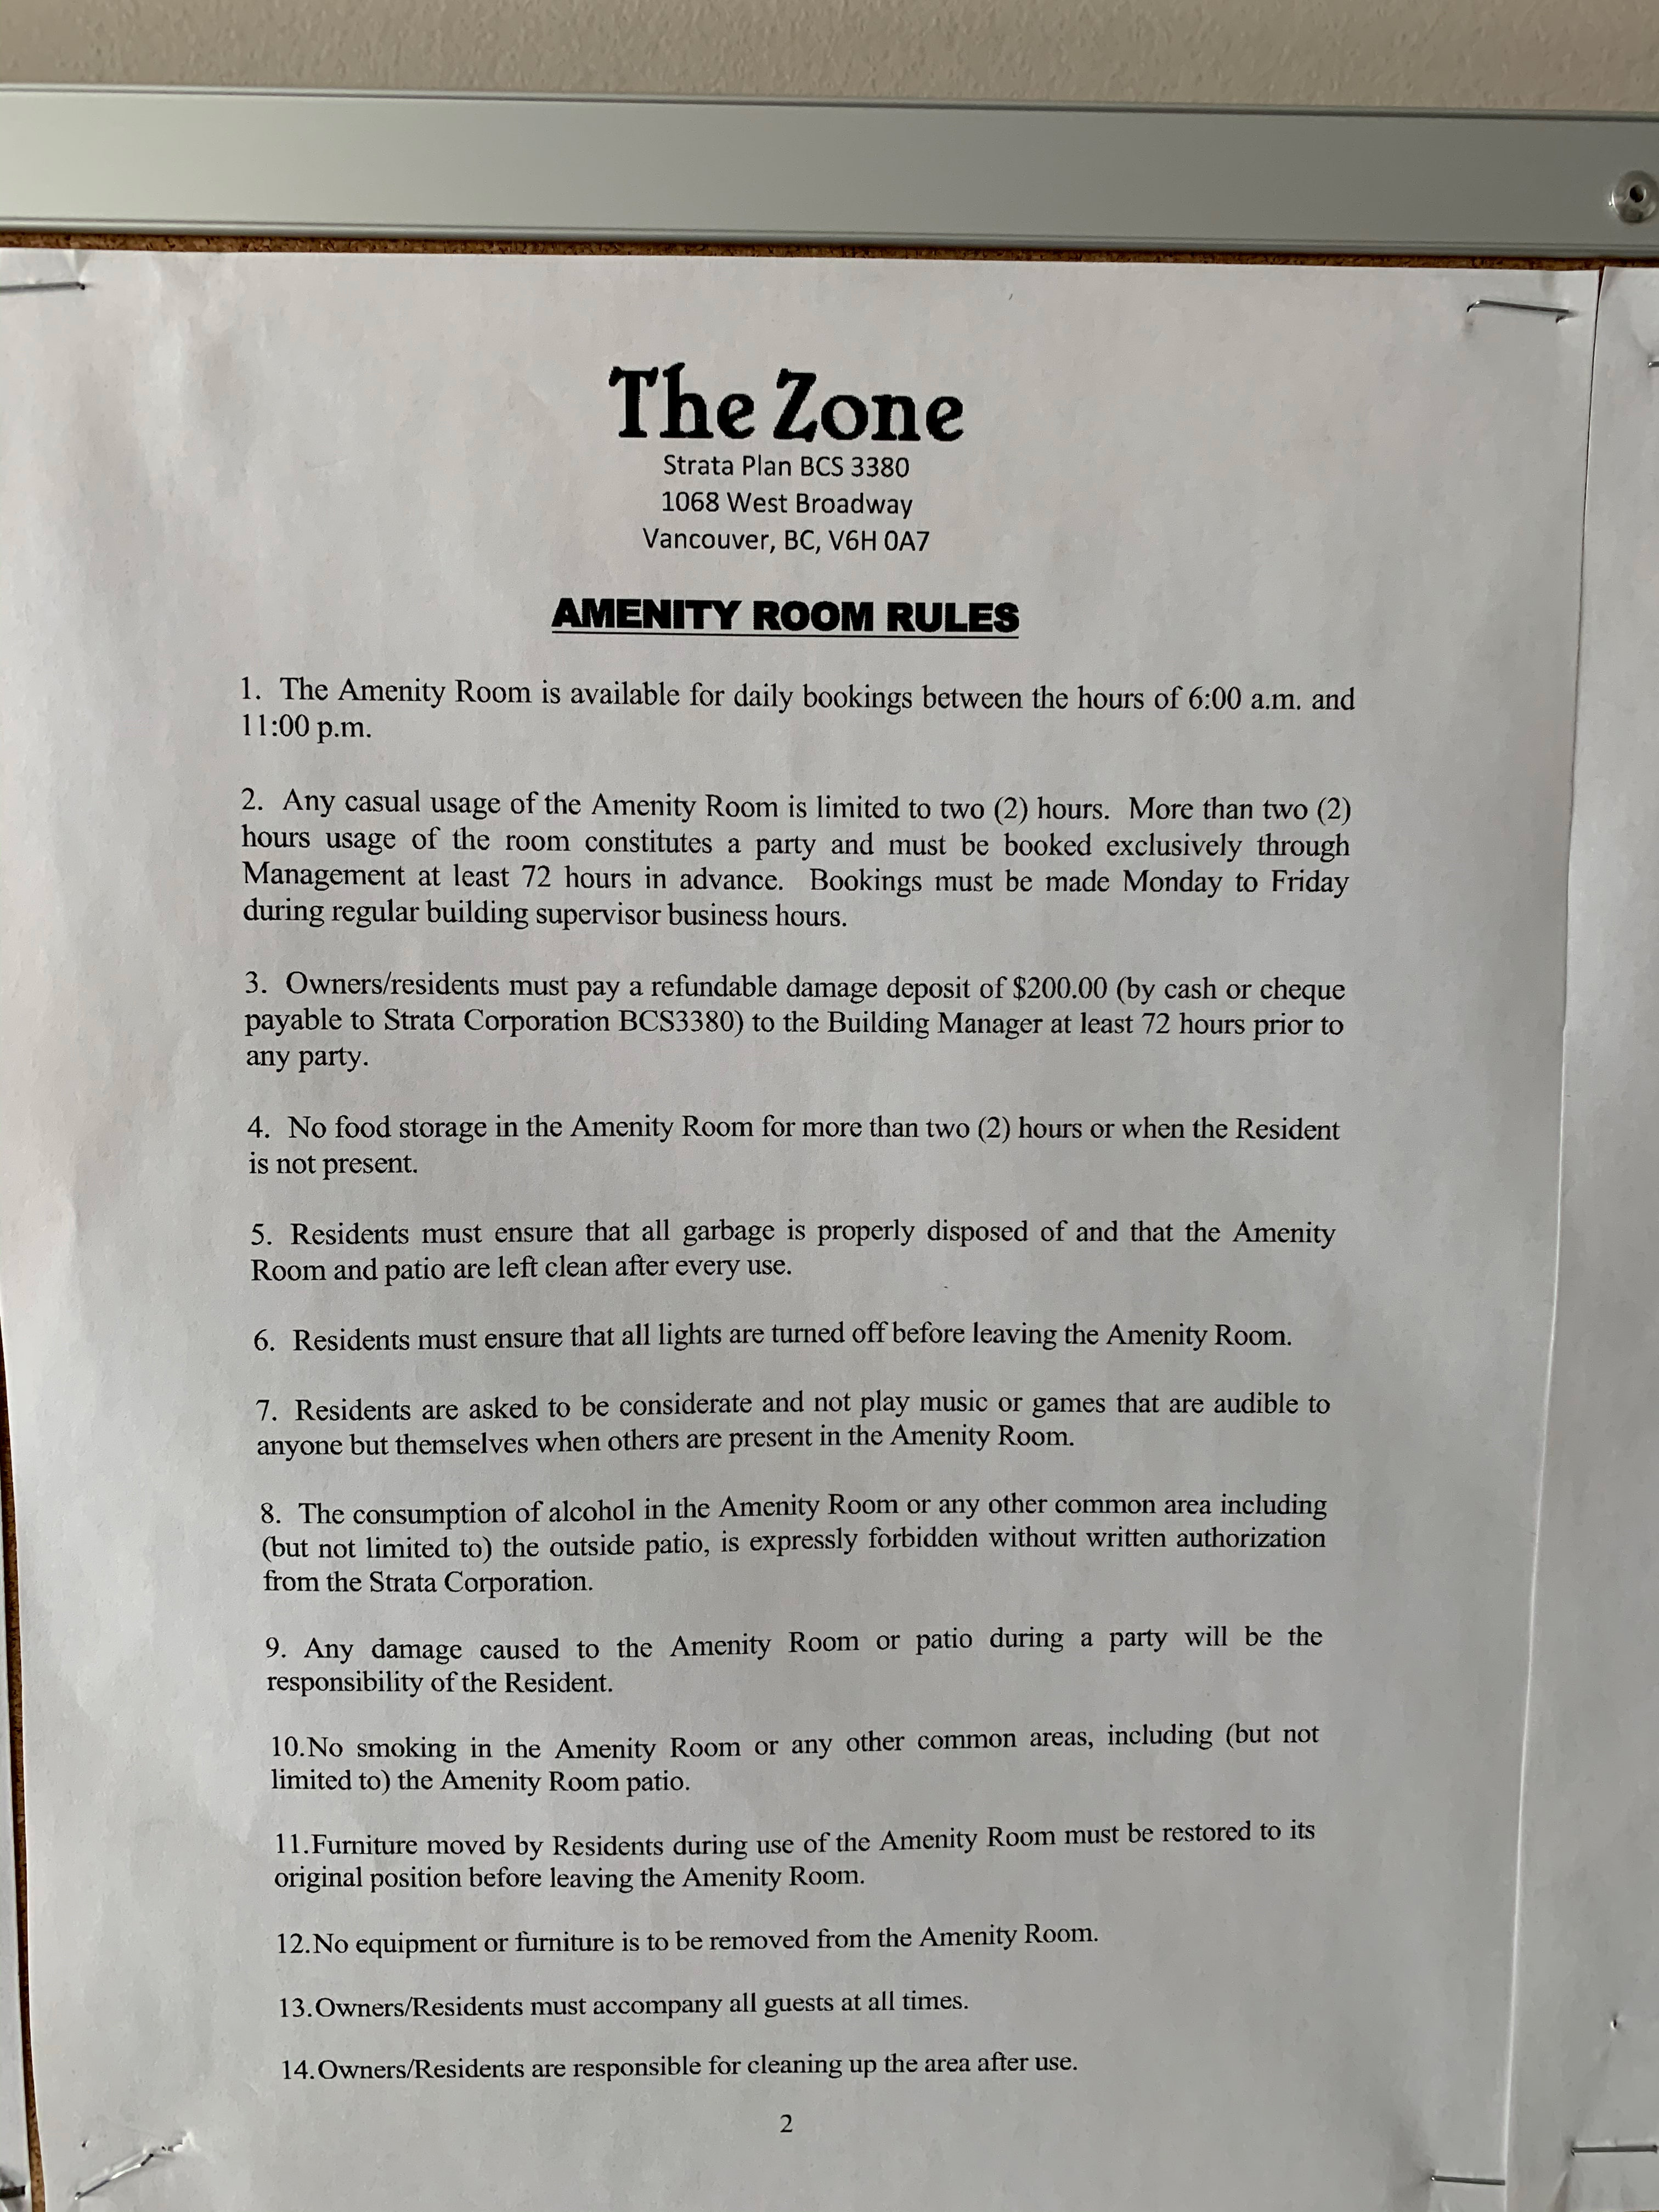 The Zone 1068 Broadway Notice!